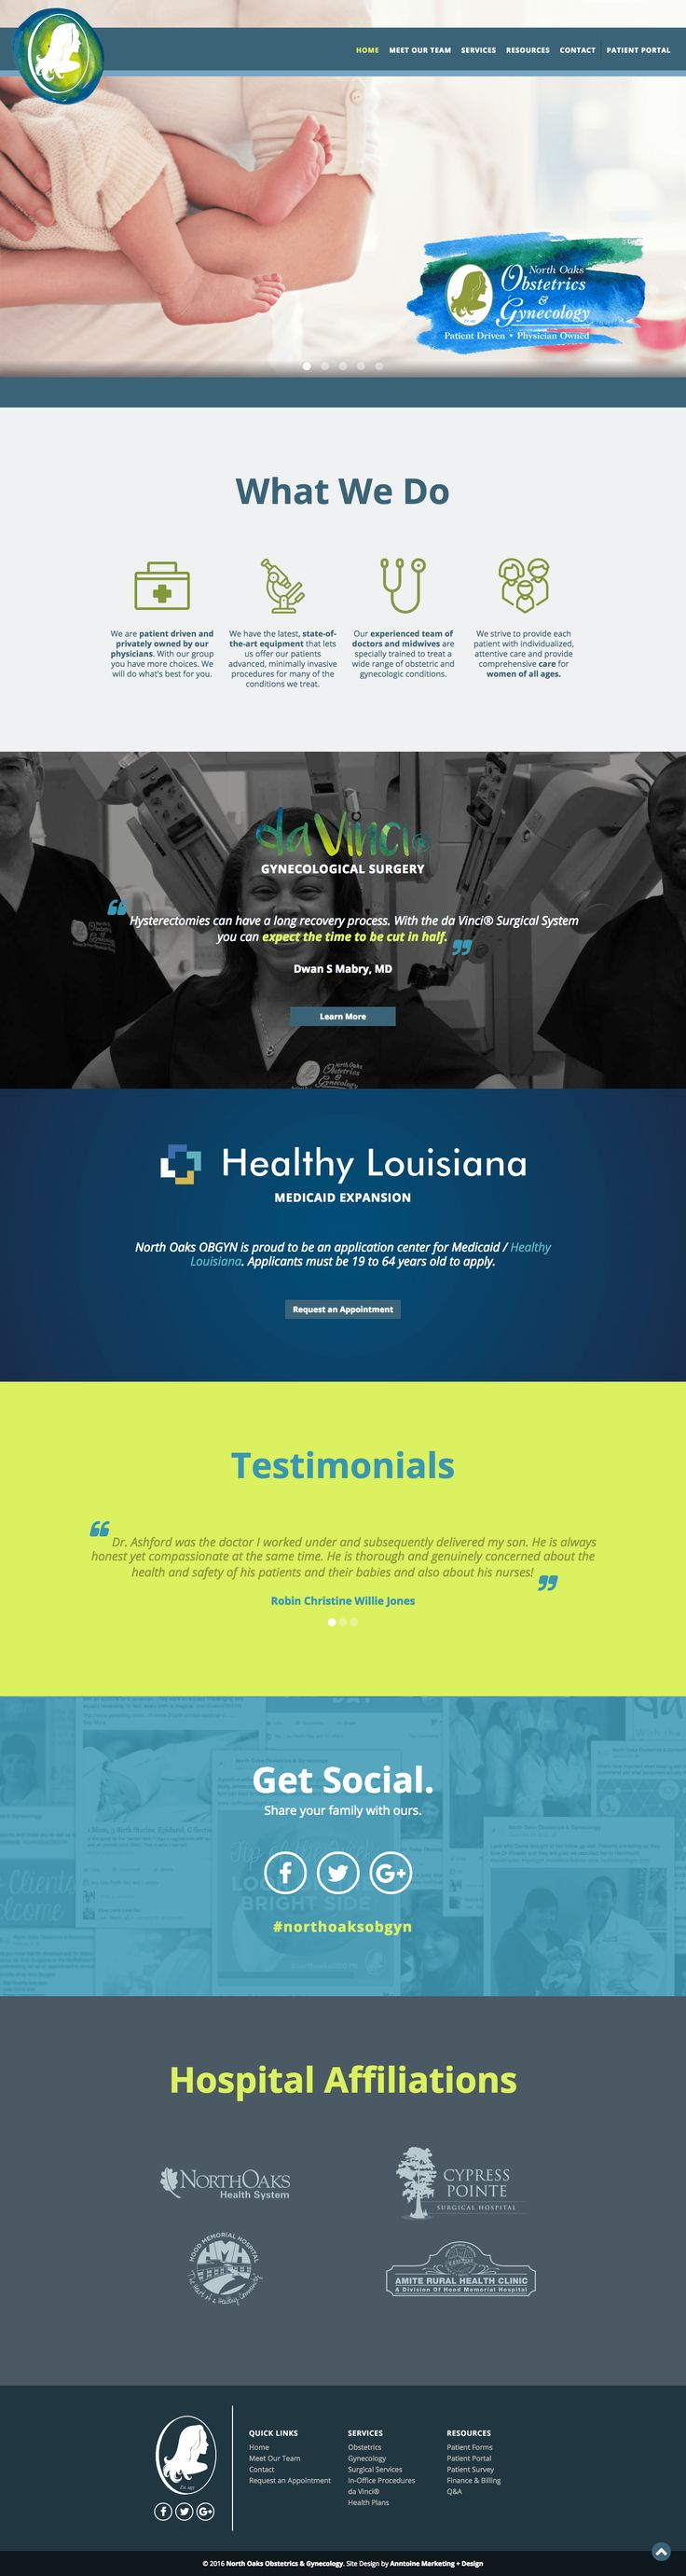 Web Design | Website Design | Responsive Website | Responsive Website Design | Fitness Website | Fitness Design | Custom Website Design | Custom Website | Healthy School Food Collaborative Website | Branded Website Design | Website Inspiration | Website Ideas | Web Design Ideas | Parallax Scrolling | OBGYN | Health | North Oaks | Women Health | http://northoaksobgyn.com/